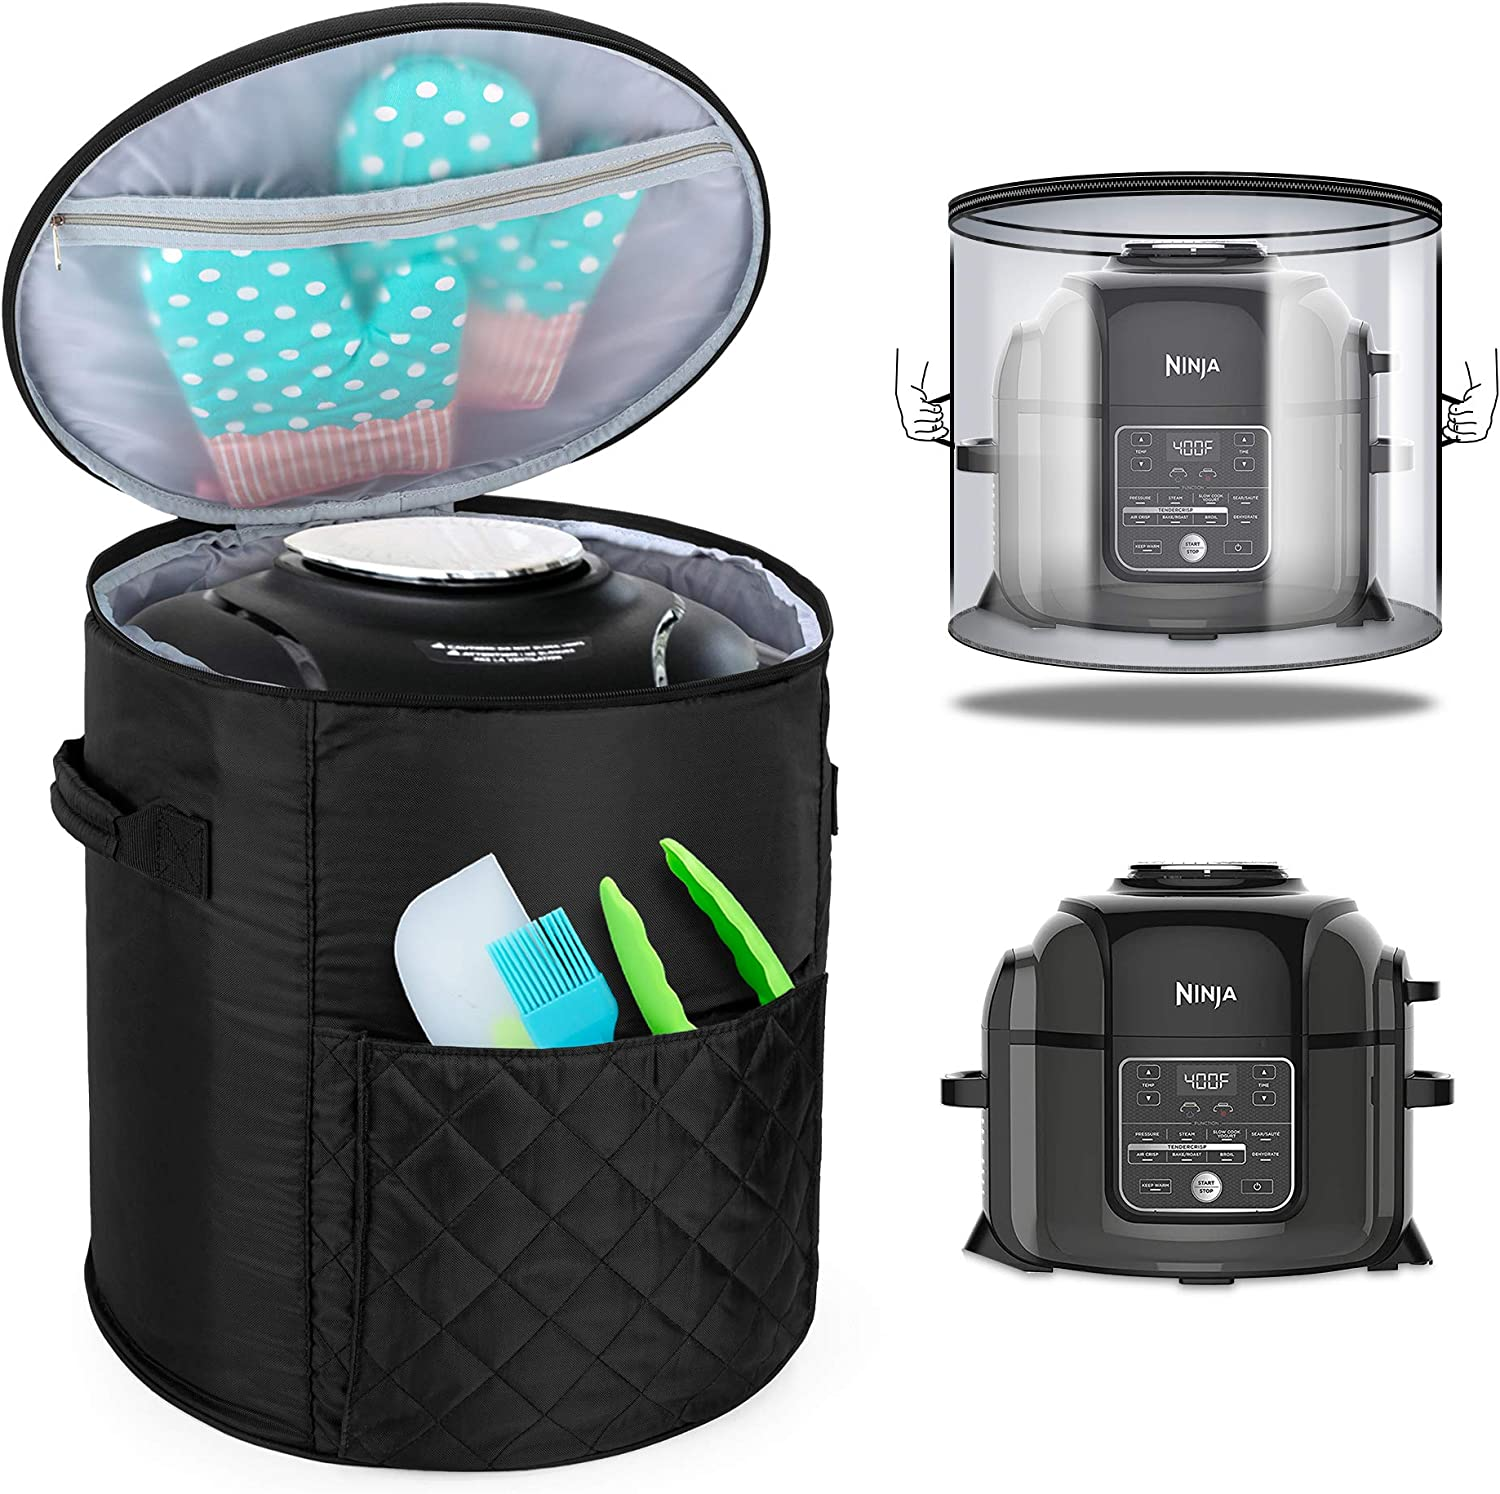 Luxja Cover Compatible with Ninja Foodi Pressure Cooker (Totally Enclosed with Side Handles), Pressure Cooker Cover Compatible with Ninja Foodi (Fits for 6.5 Quart and 8 Quart), Black (Quilted Fabric)